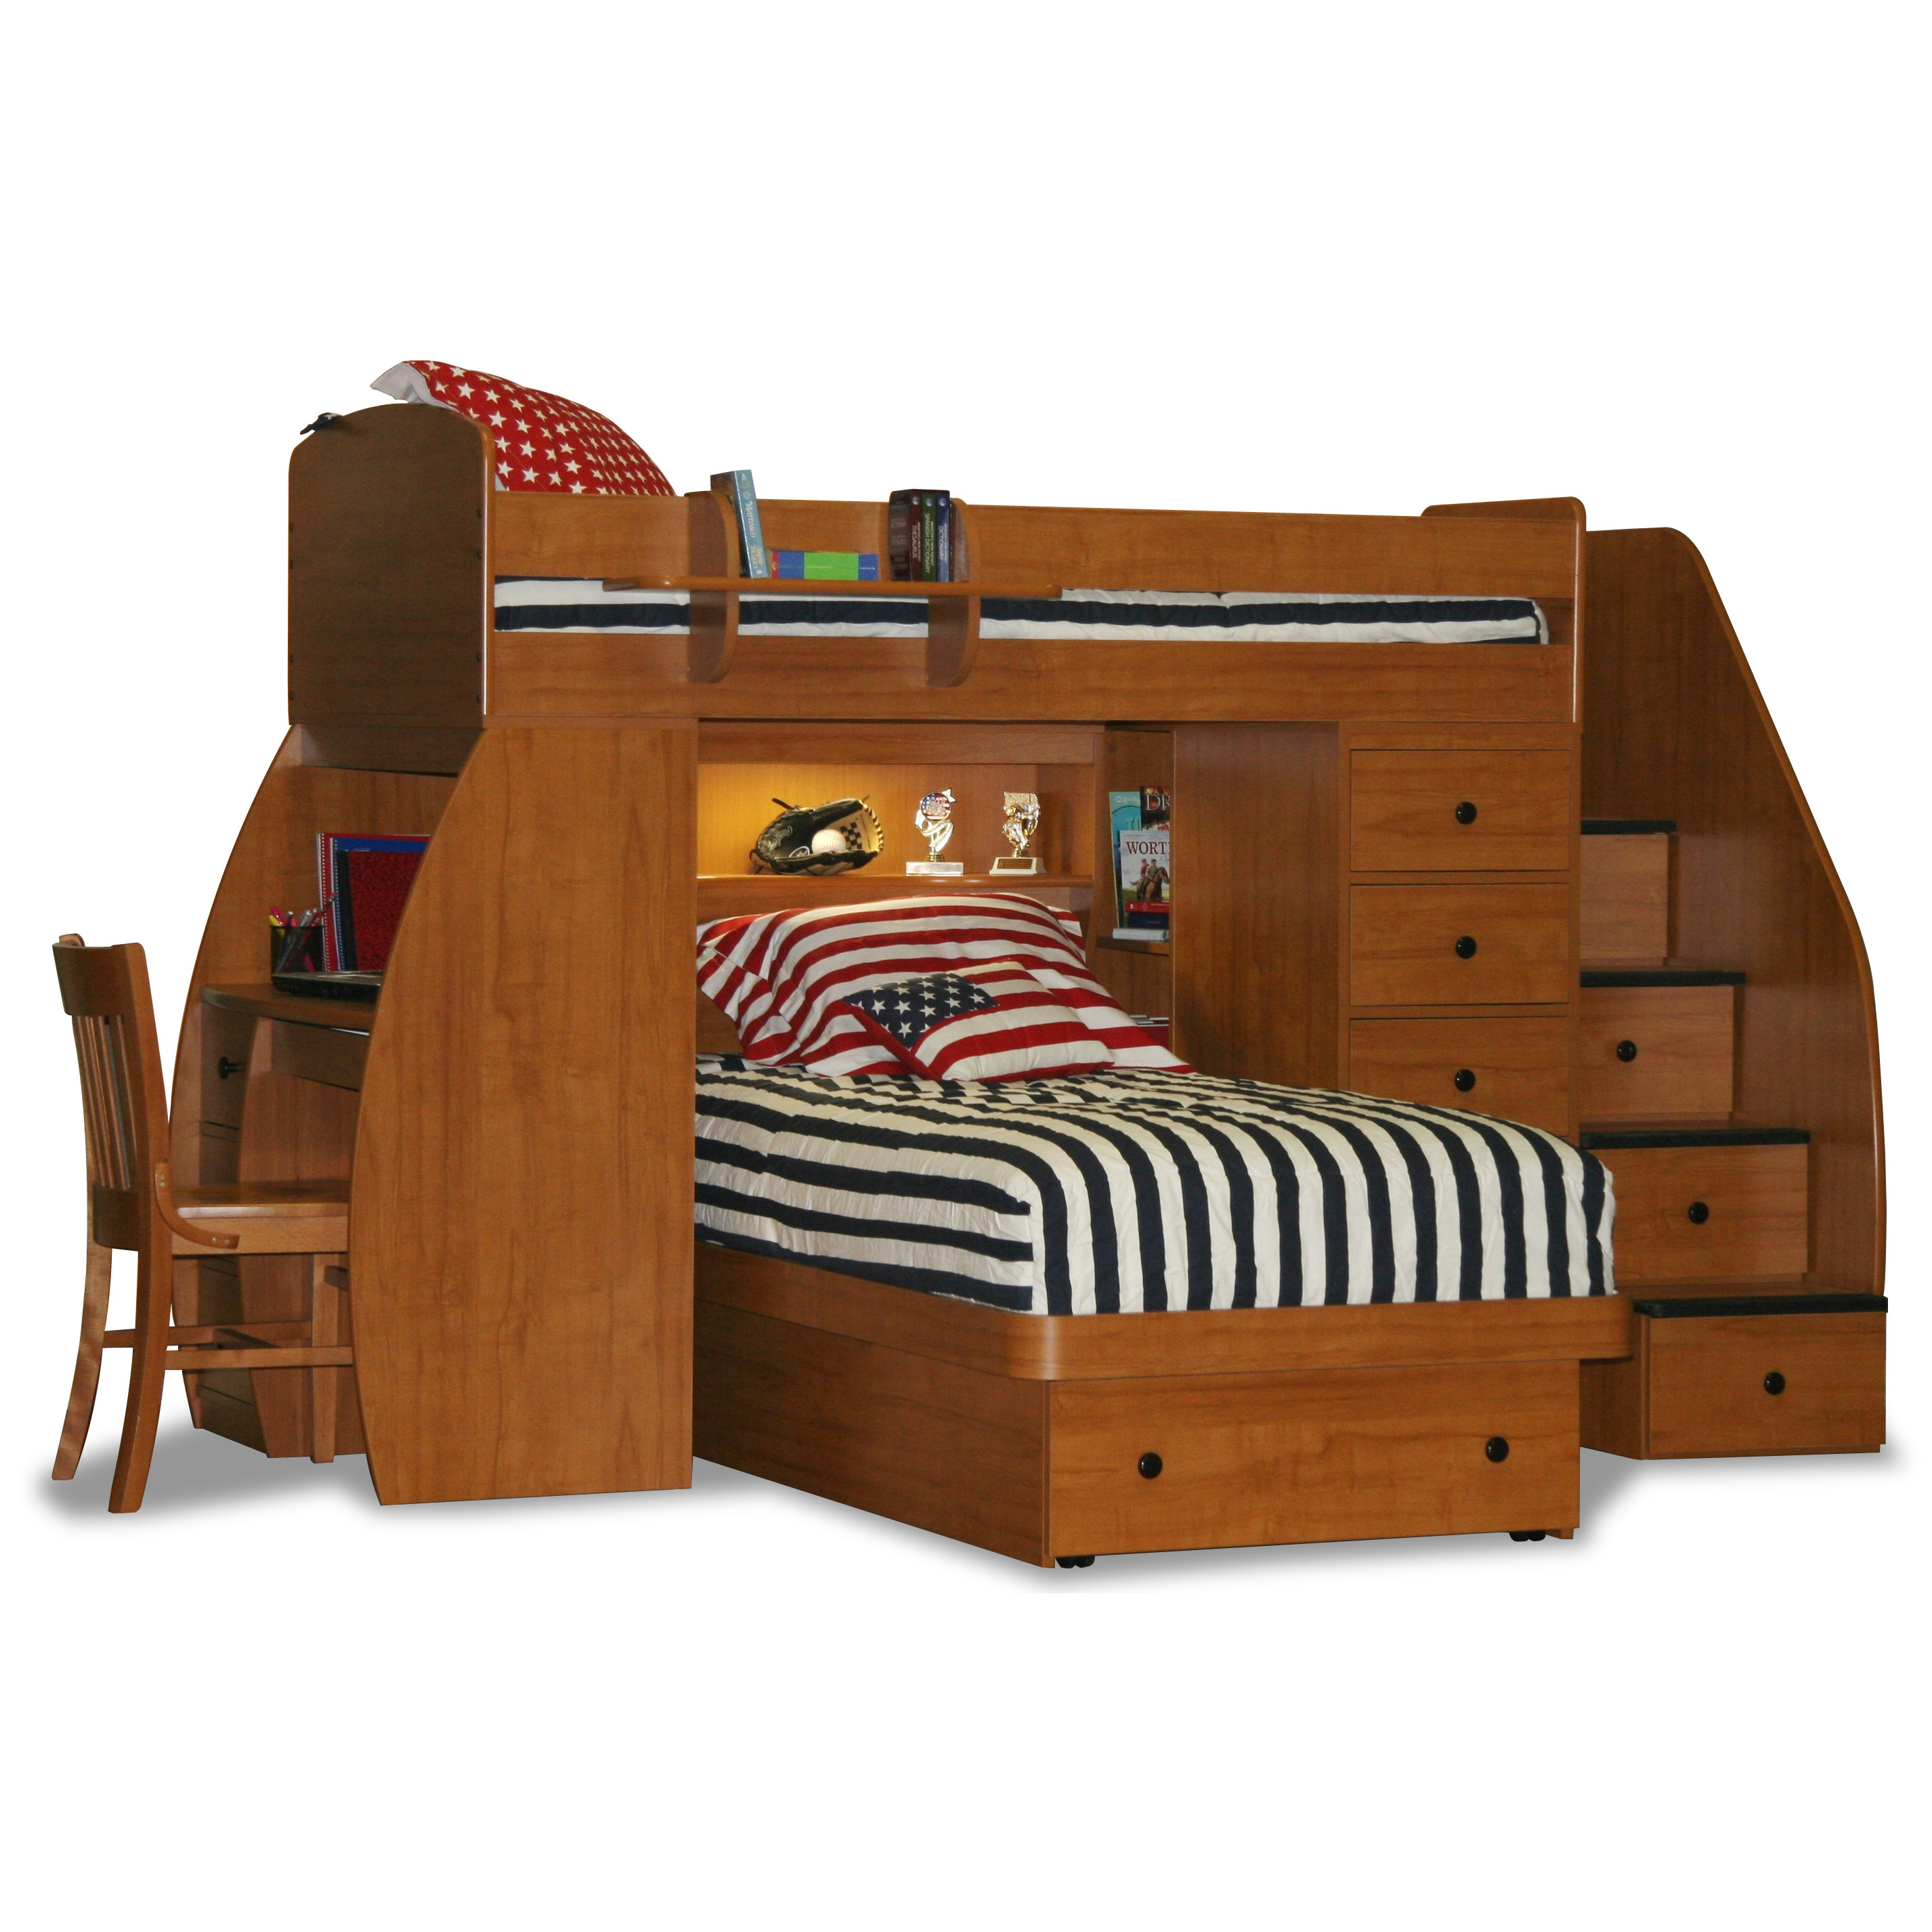 Twin Over Full Bunk Bed with Desk: Best Alternative for Kids Room ...